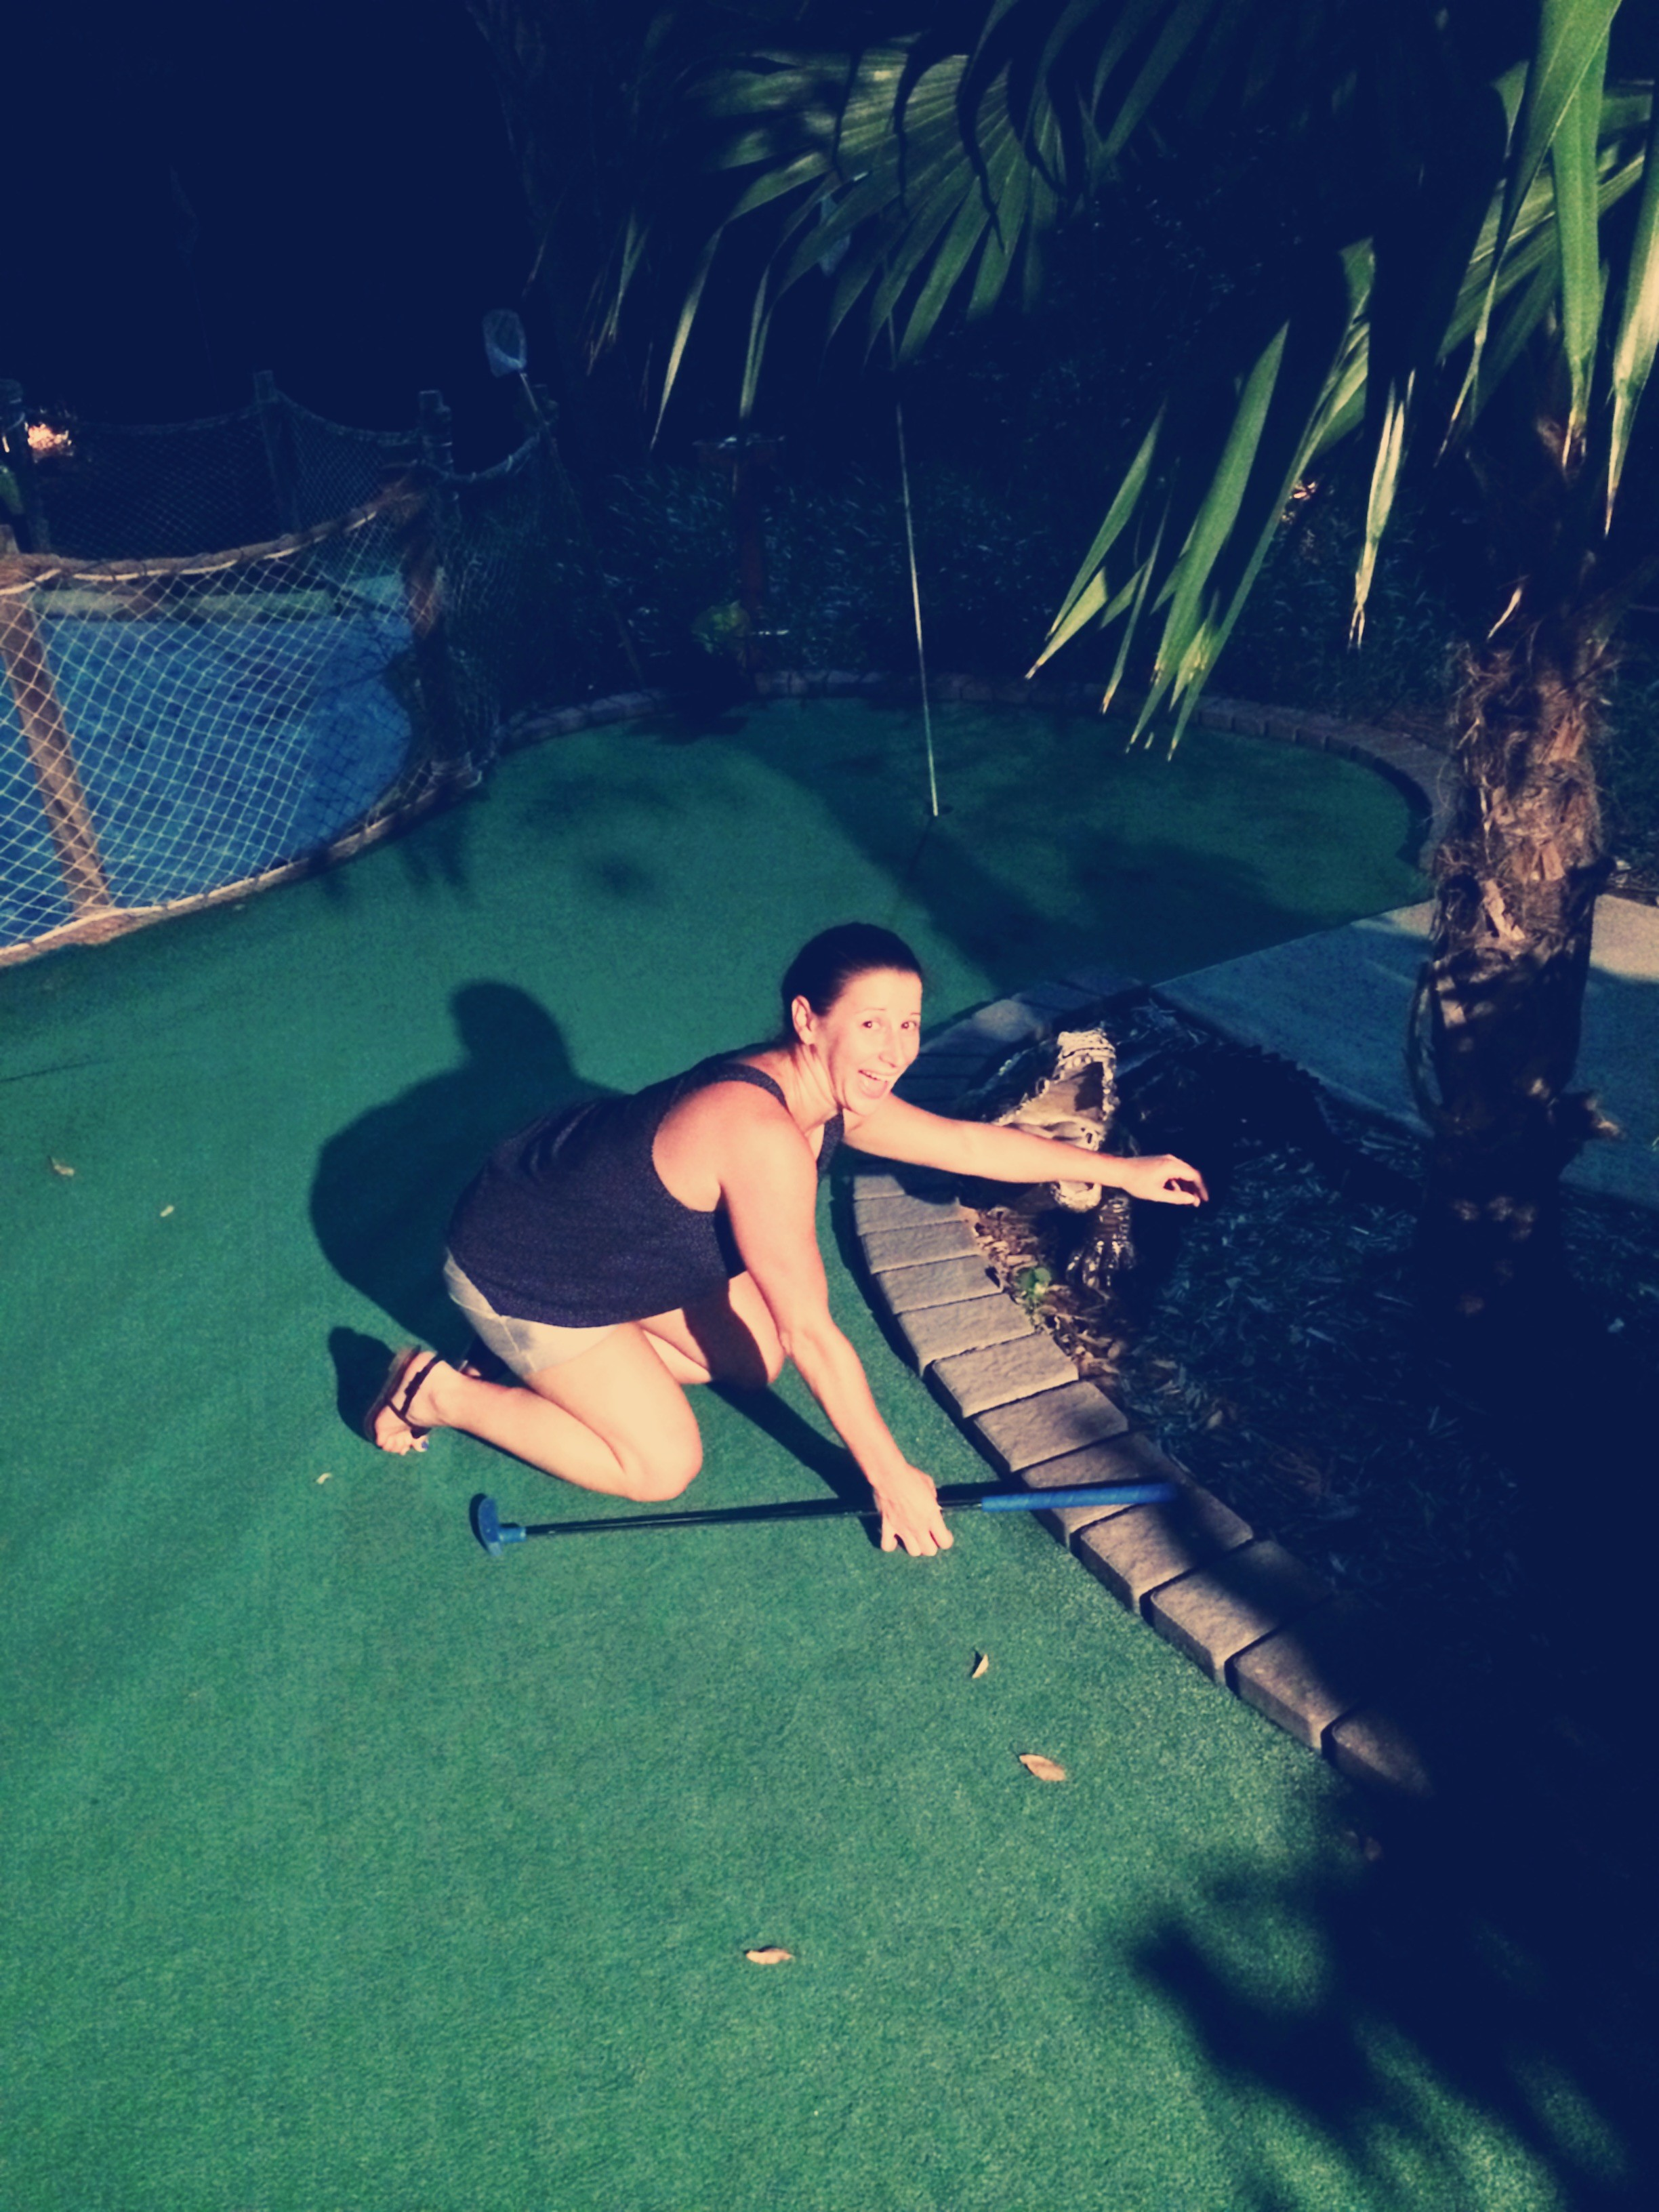 We played the Everglades course...and I may have lost my ball to an alligator